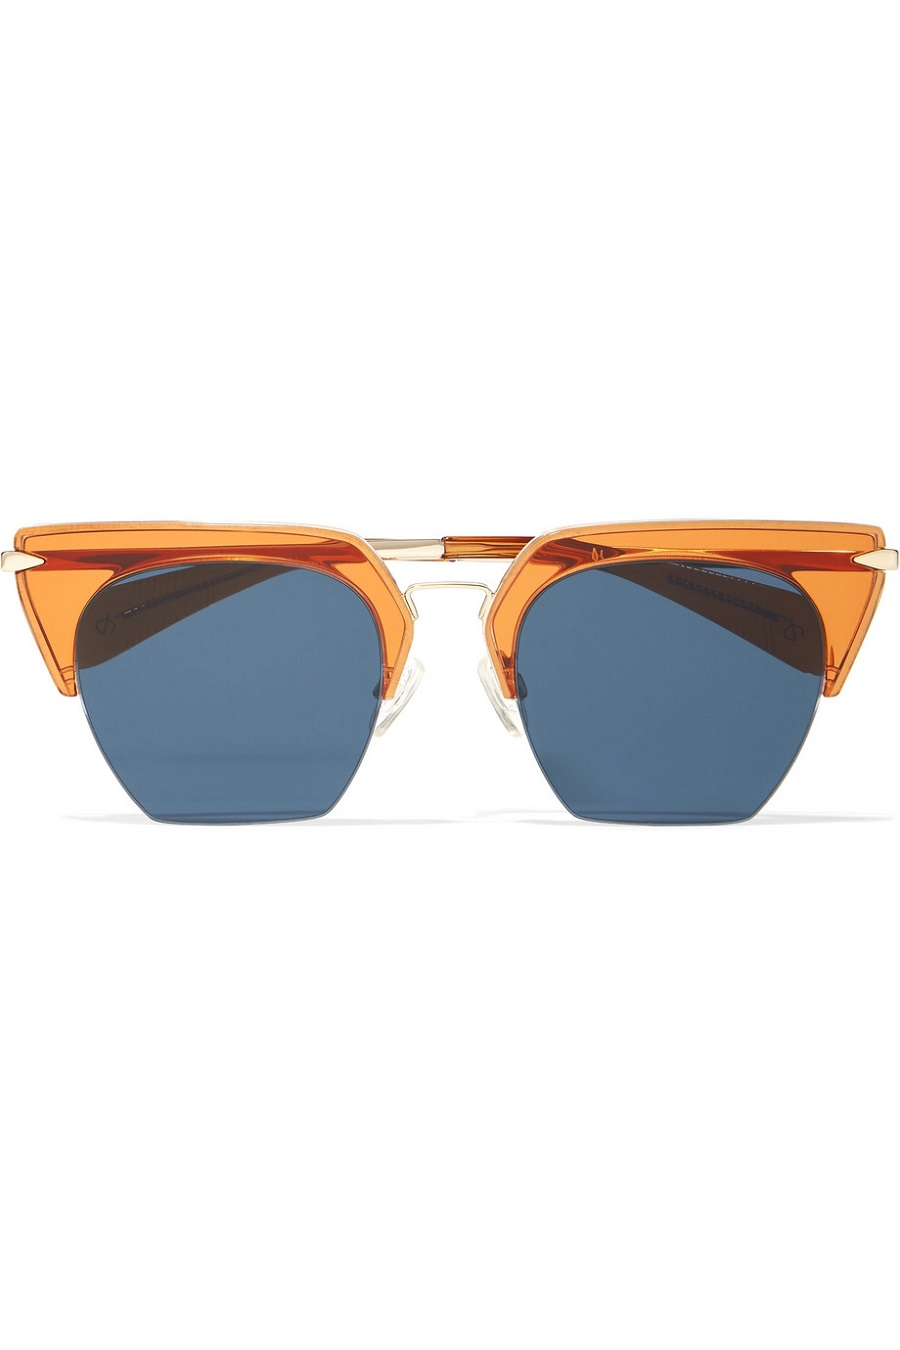 Now Trending: Sunglasses Unik!